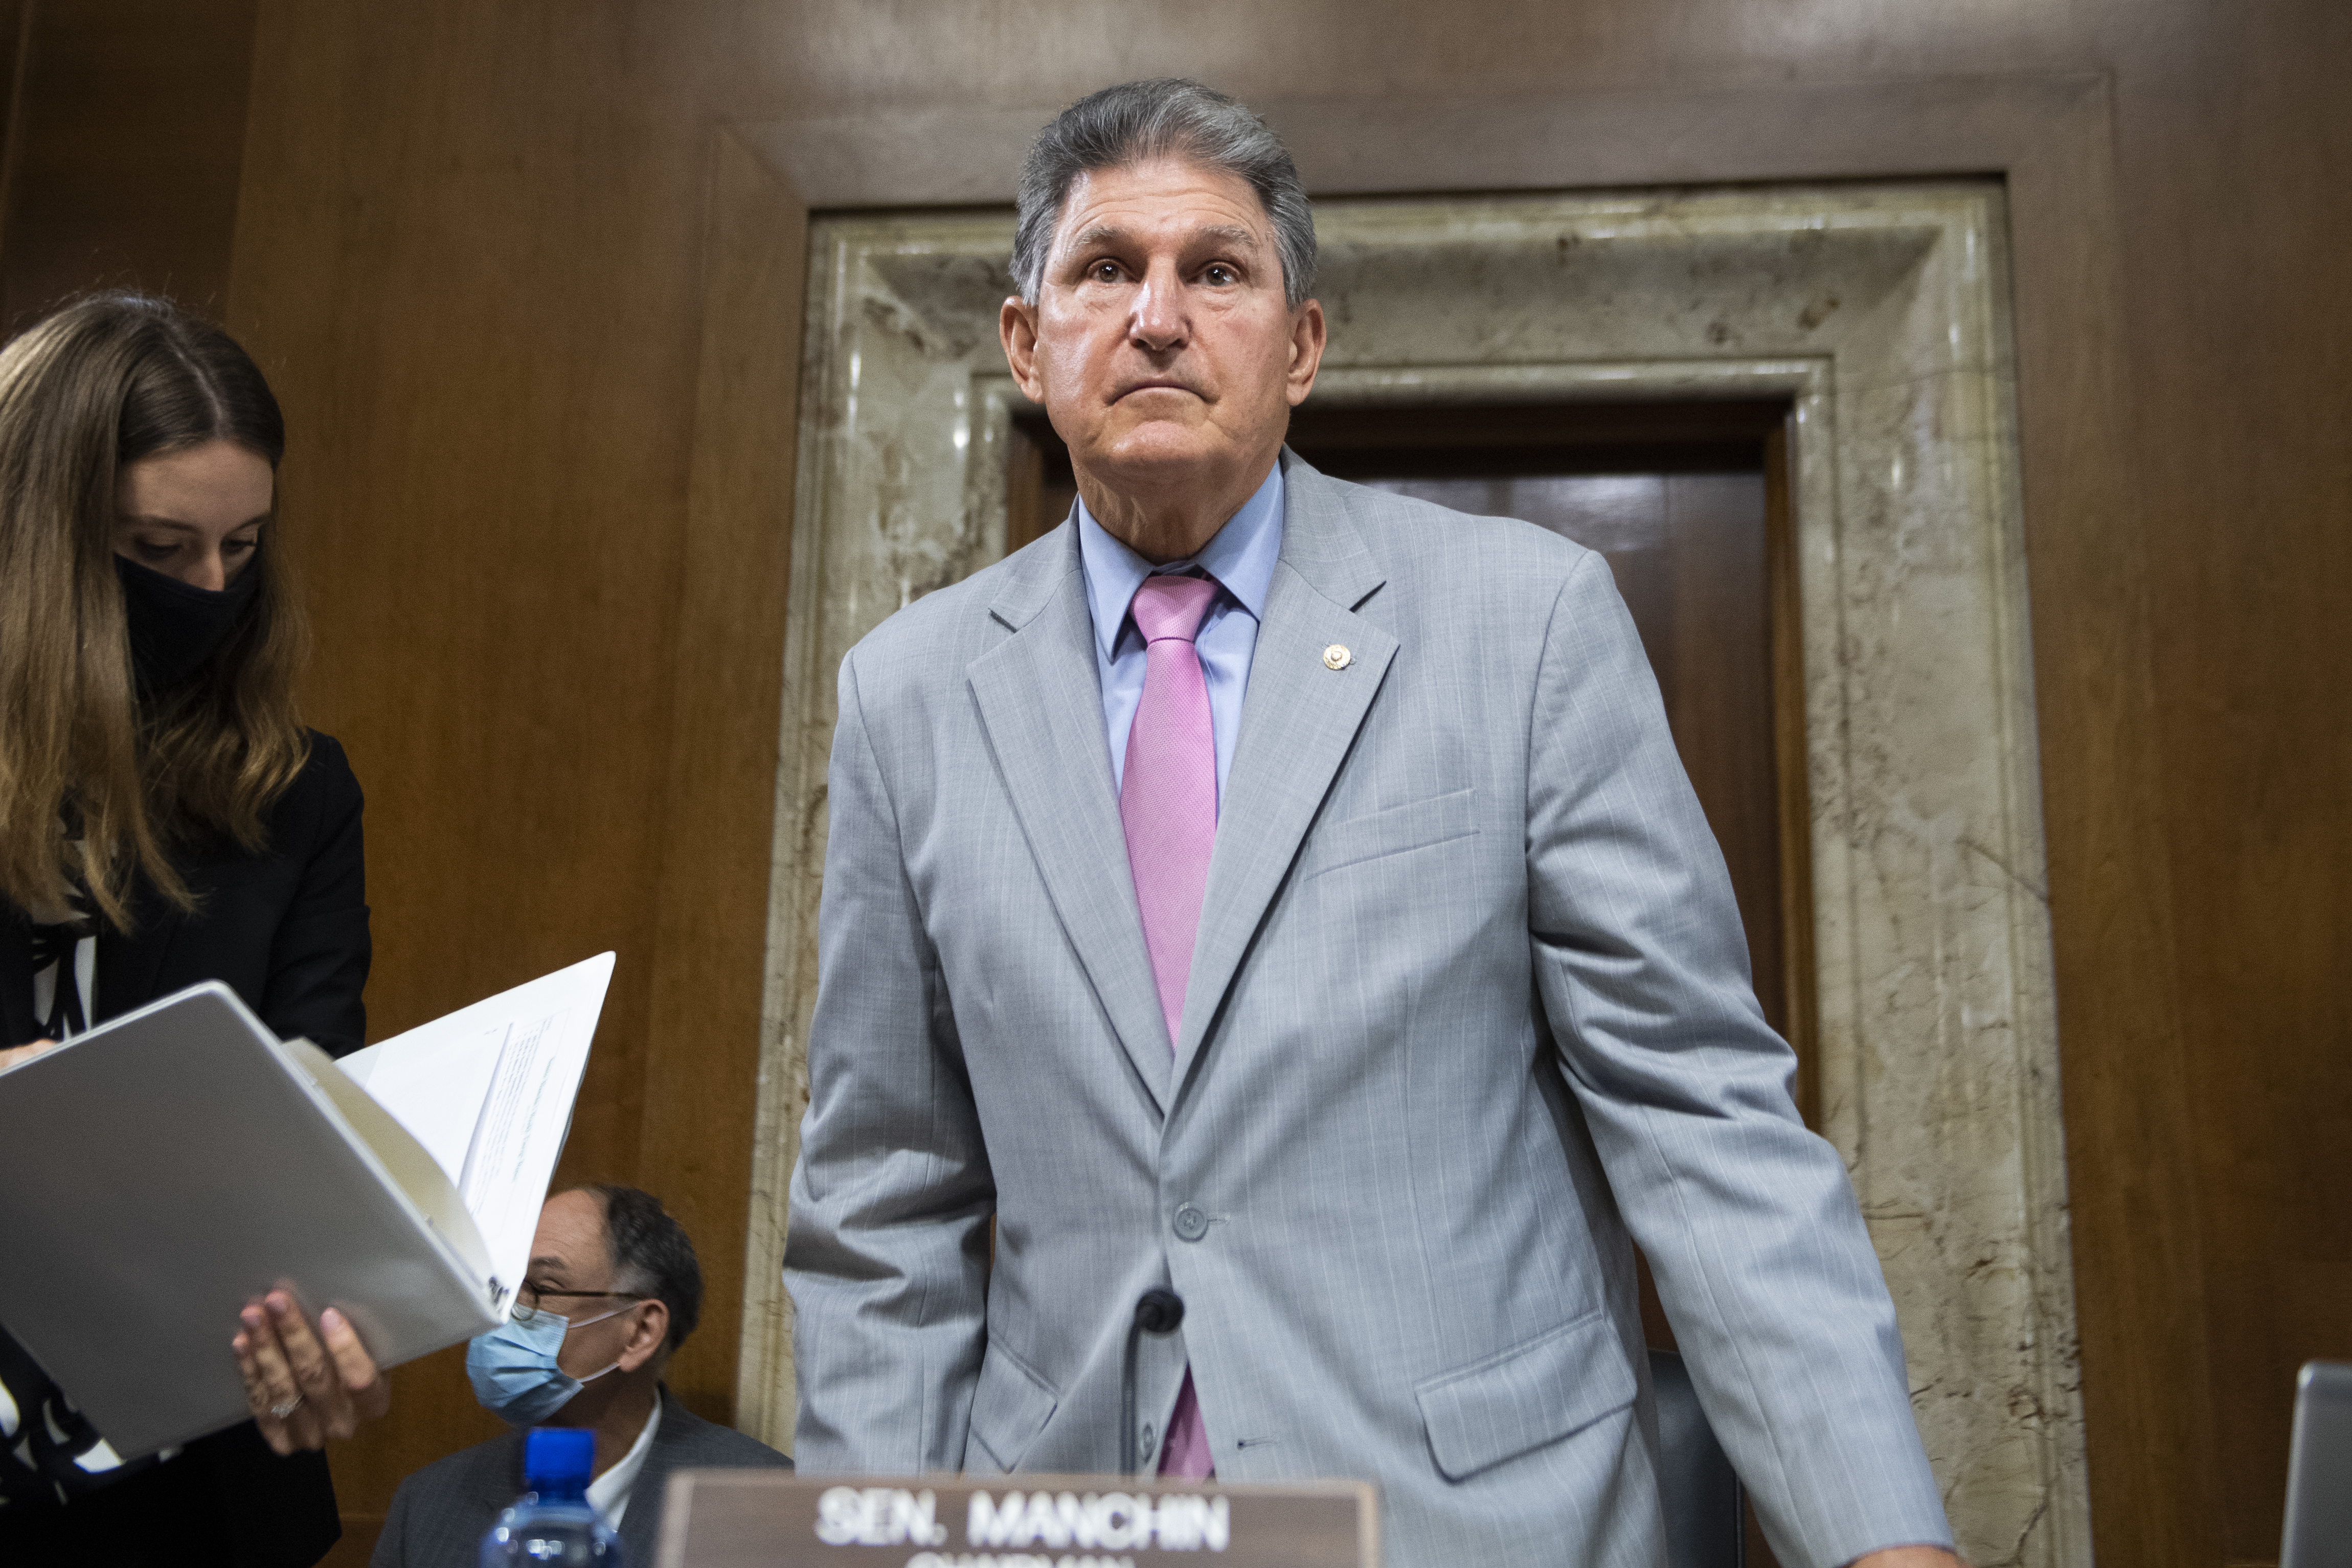 Manchin enters a Senate hearing room, dressed in a light gray suit, blue shirt and pink tie.